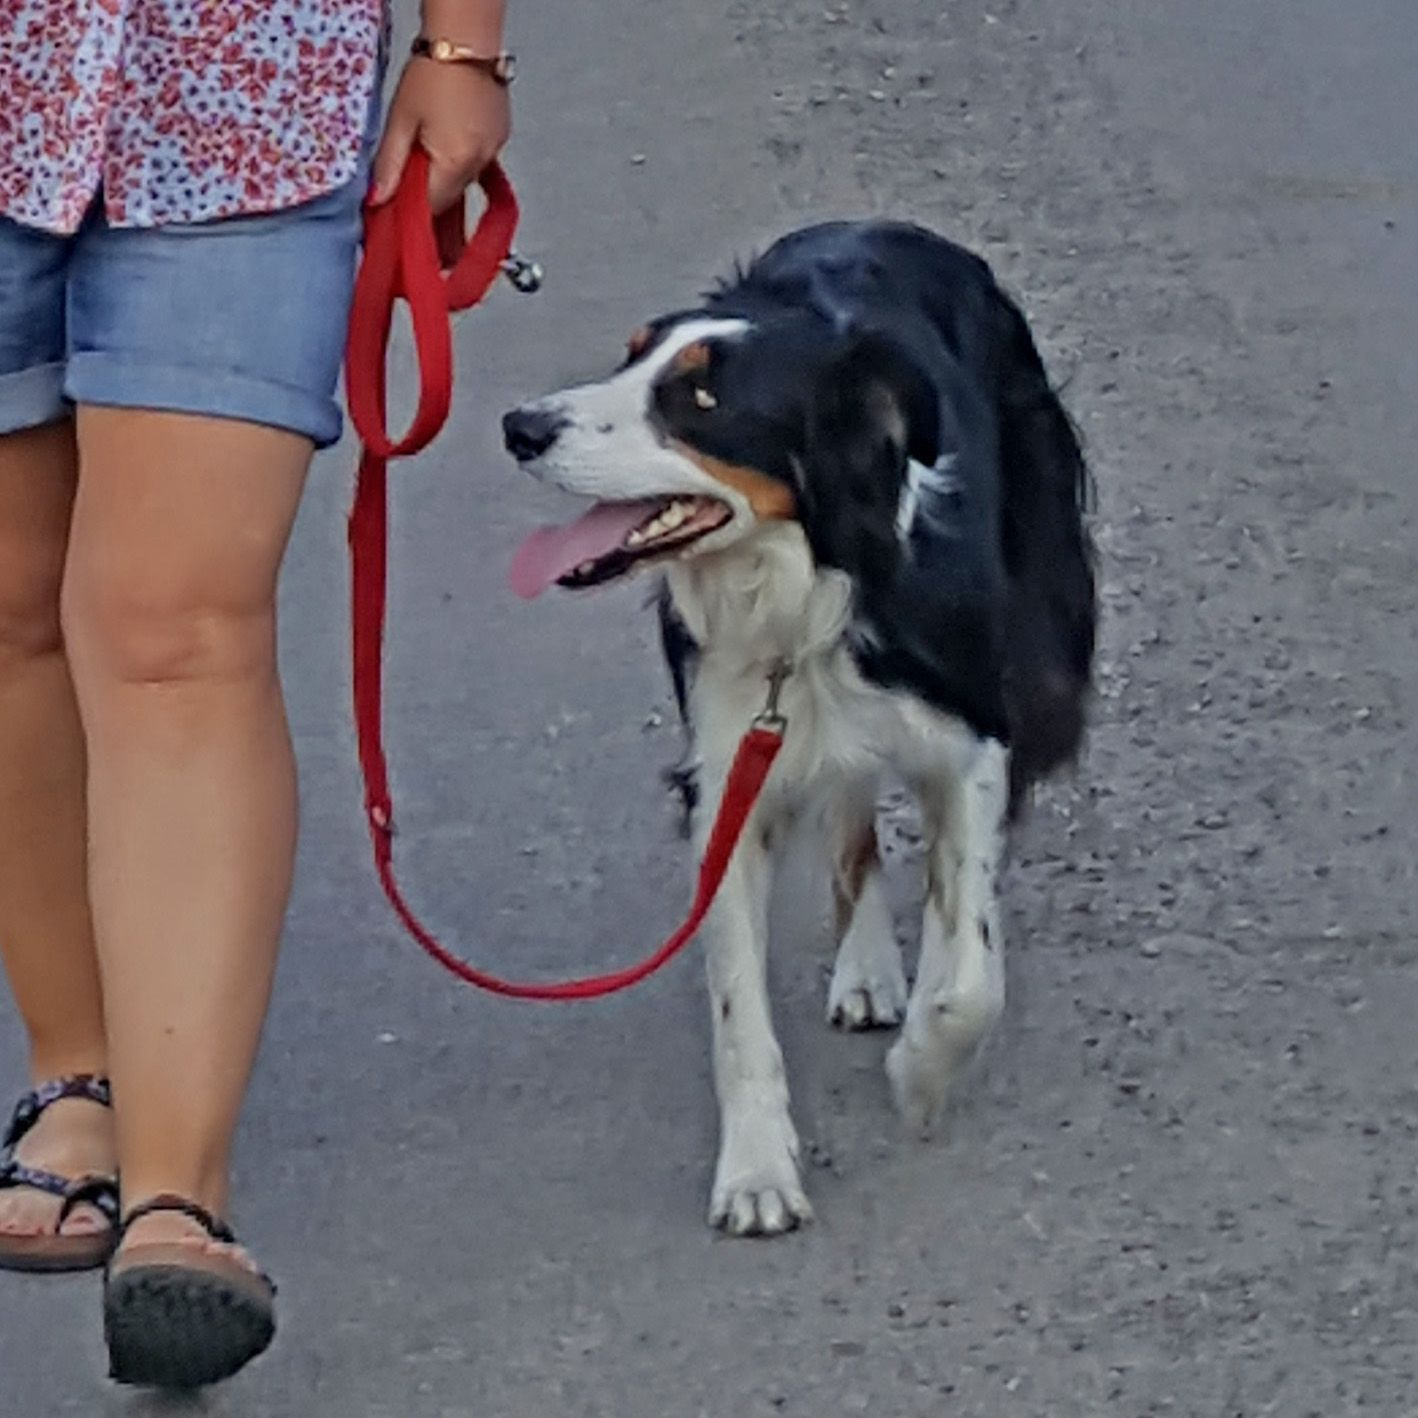 Walk your dog on a loose lead